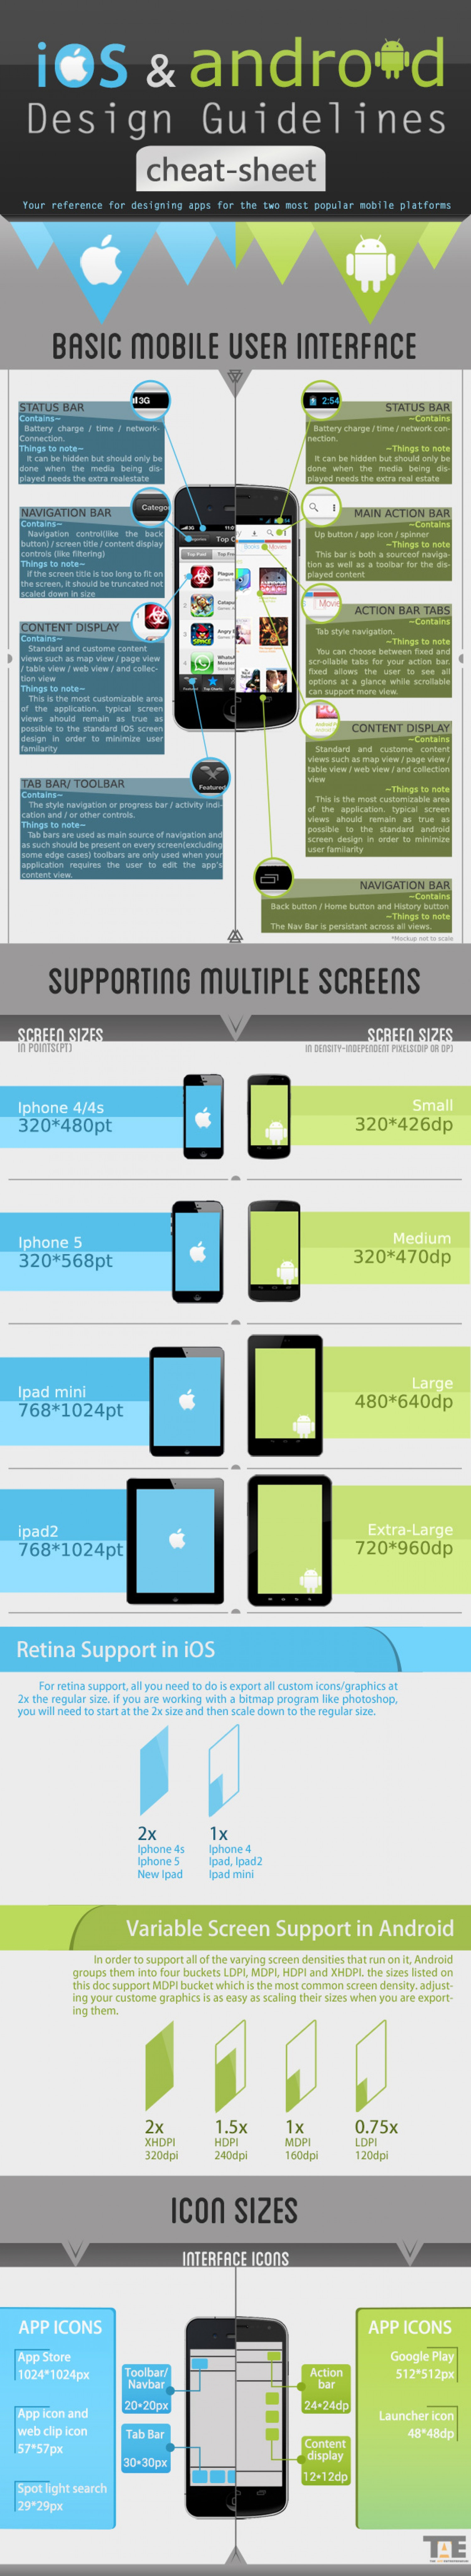 9. iOS And Android Design Guidelines